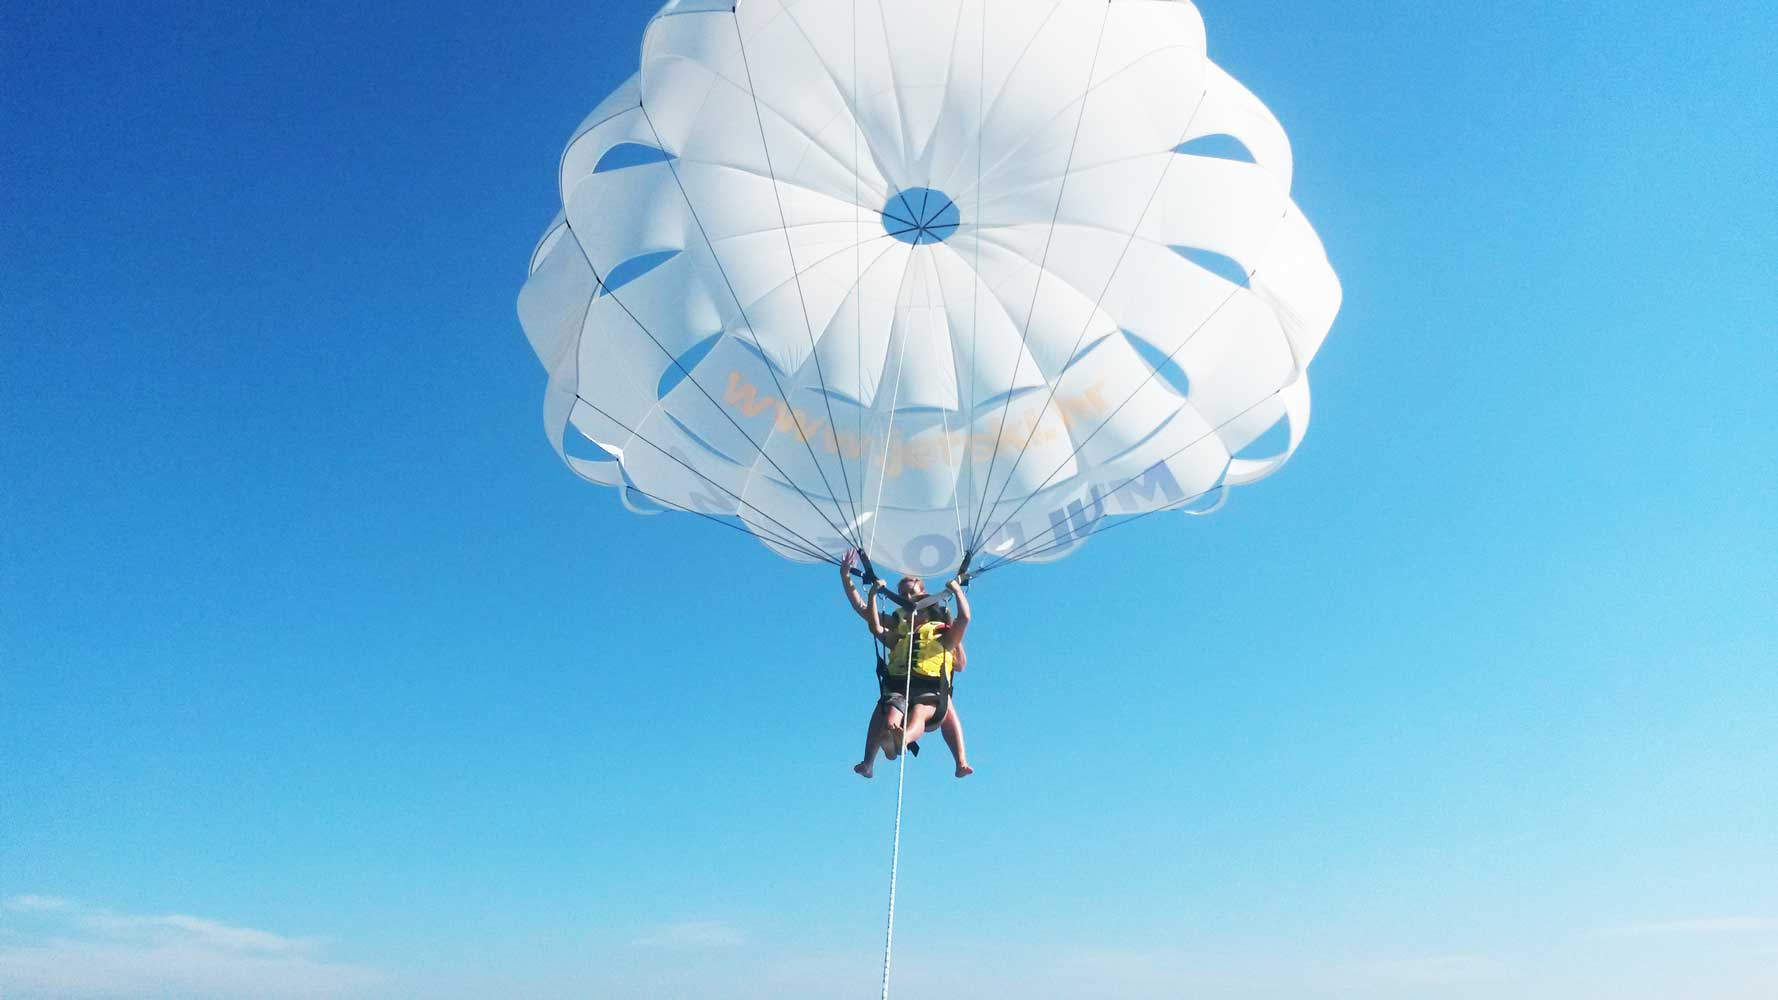 Parasailing - Water sports - Parachute rides on water